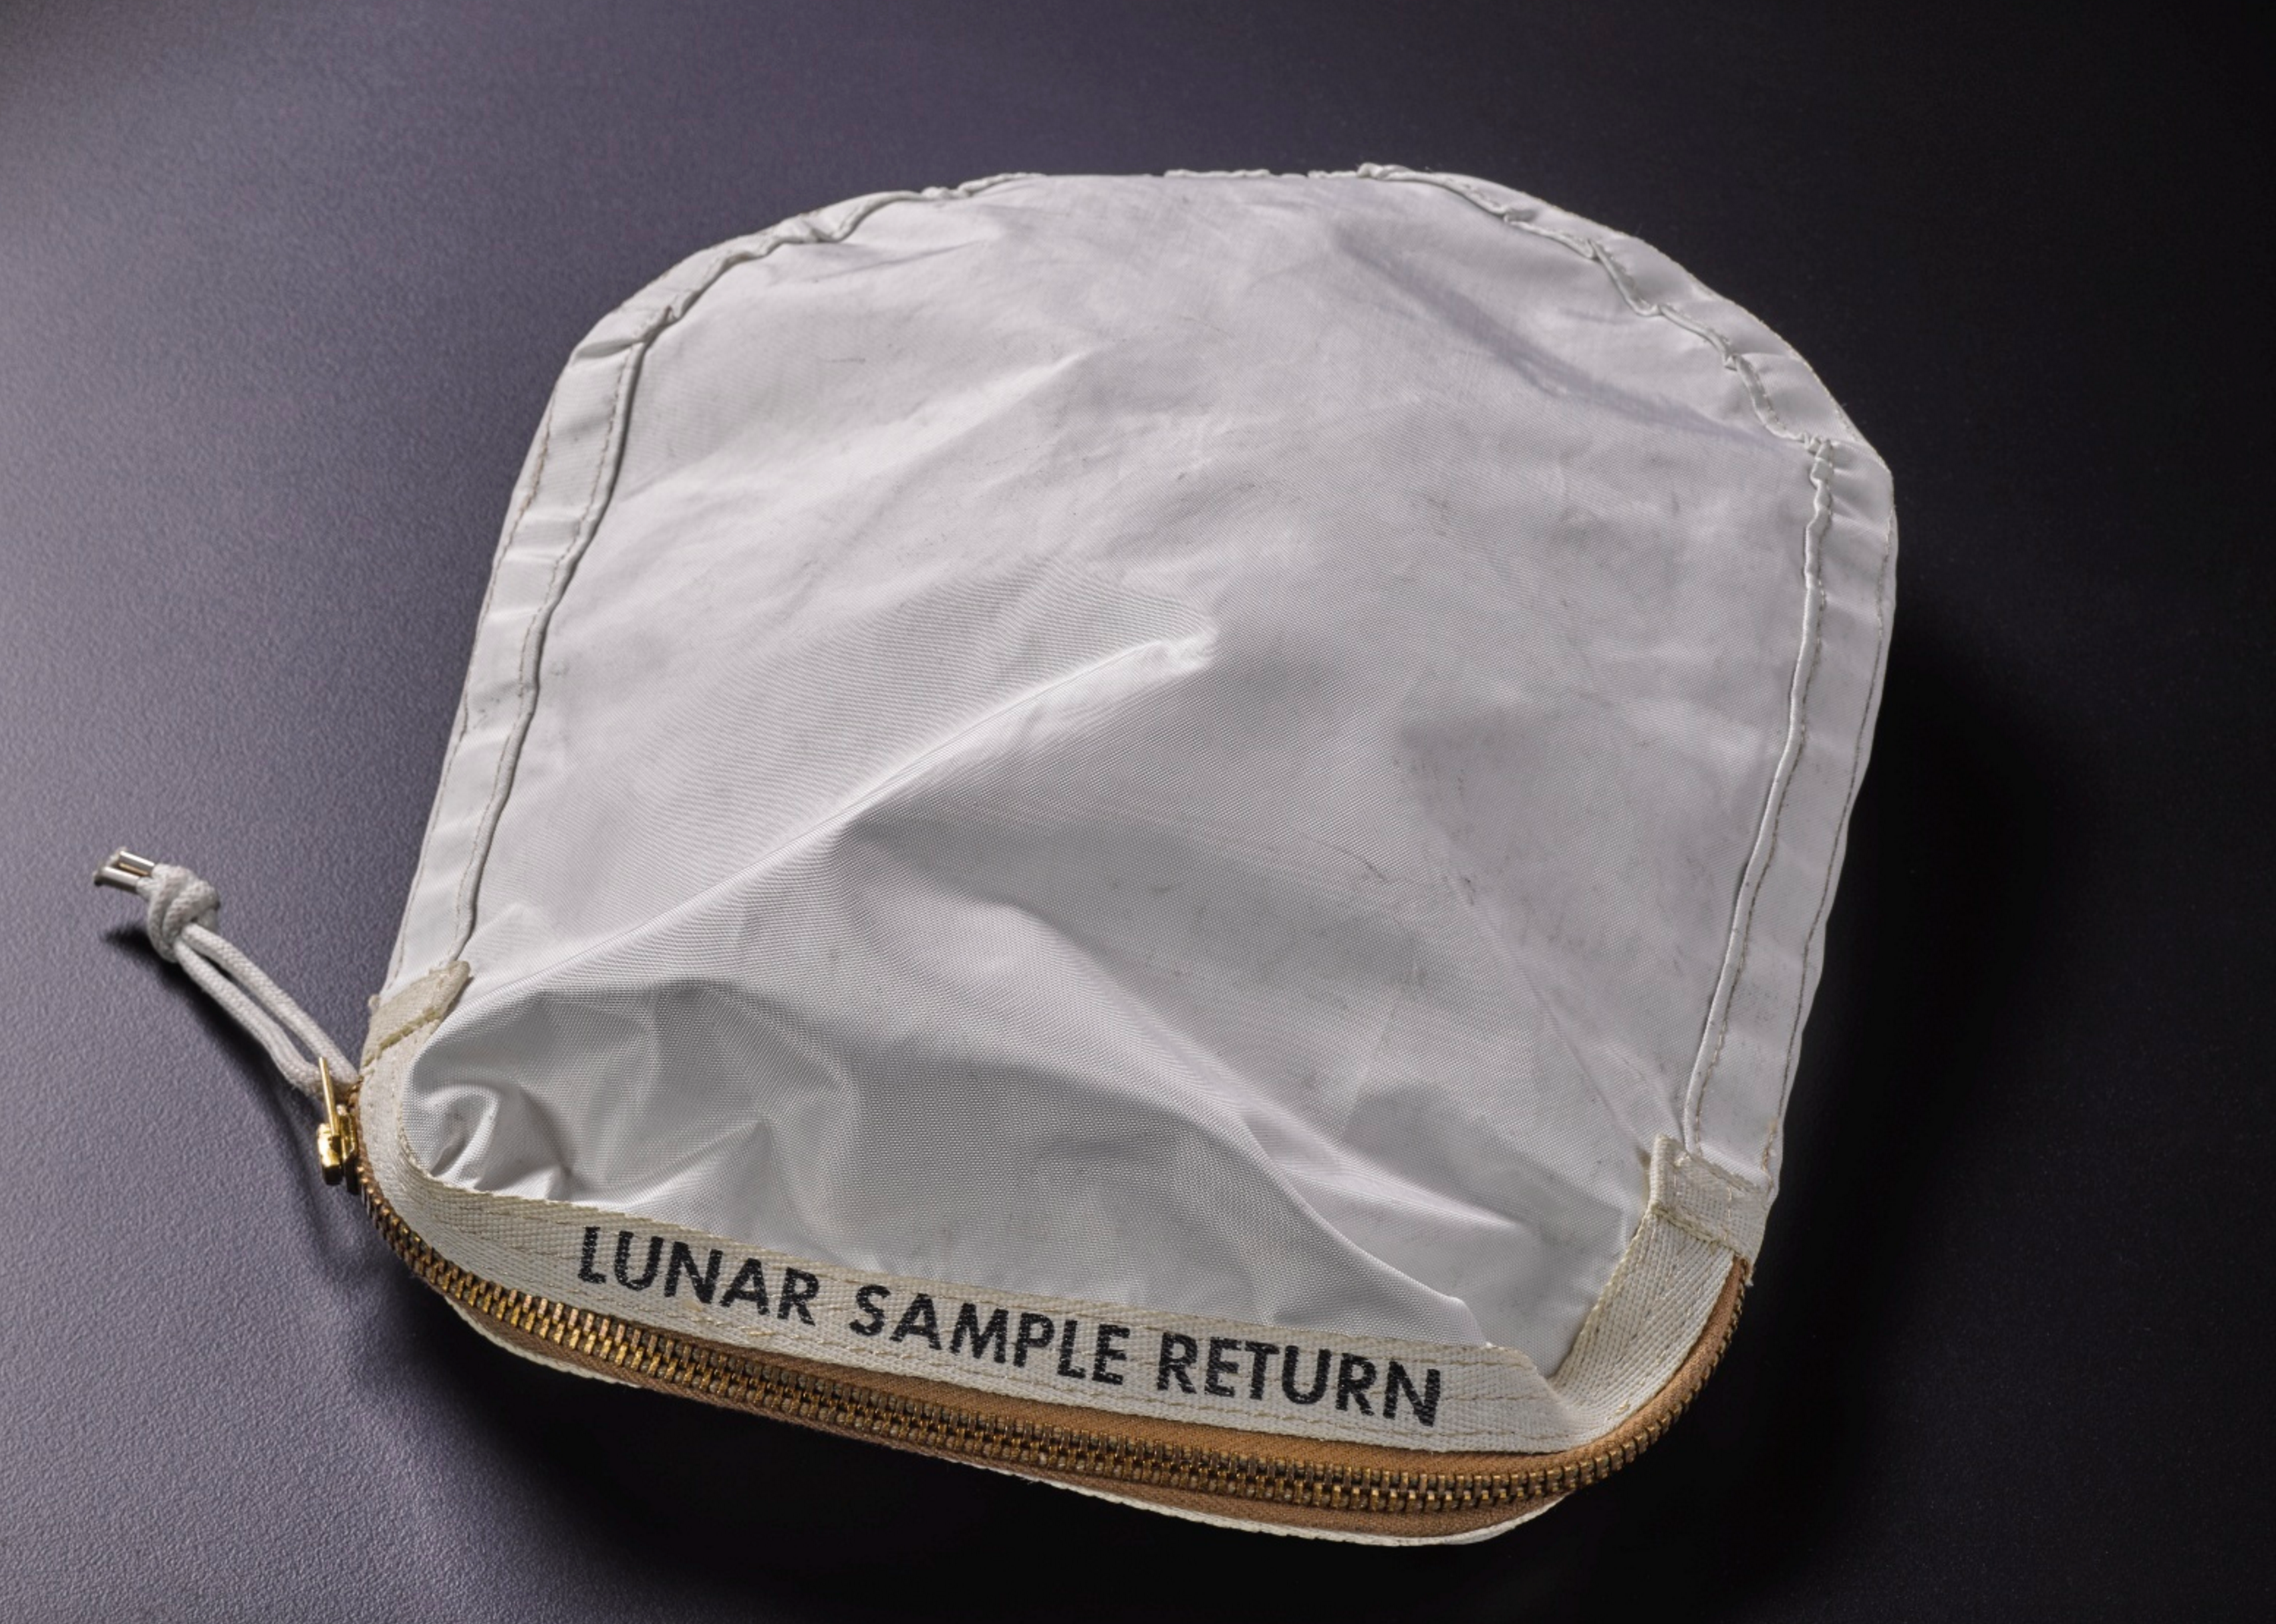 Apollo 11 Contingency Lunar Sample Return Bag Auction Report: A Sample Bag From Apollo 11 Hammers For $1.8 Million At Sotheby's, Beating Out Astronaut Dave Scott's Flown Bulova Chronograph Auction Report: A Sample Bag From Apollo 11 Hammers For $1.8 Million At Sotheby's, Beating Out Astronaut Dave Scott's Flown Bulova Chronograph Screen Shot 2017 07 20 at 5